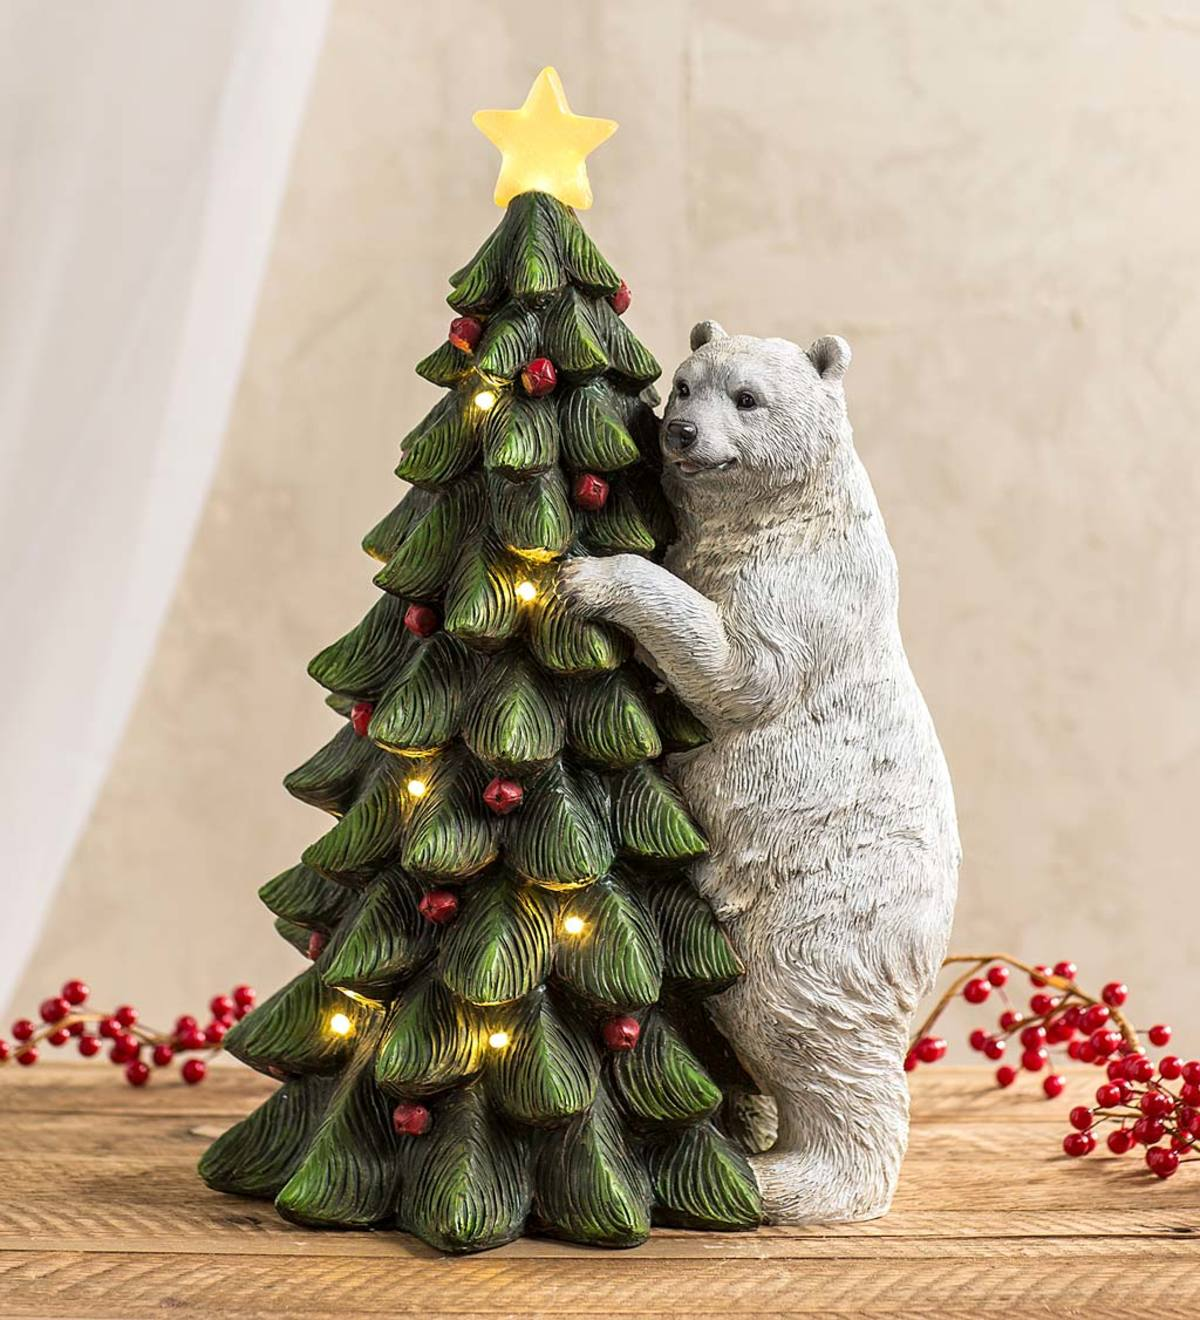 Christmas Statue Decorations: Polar Bear With Christmas Tree Lighted Holiday Statue